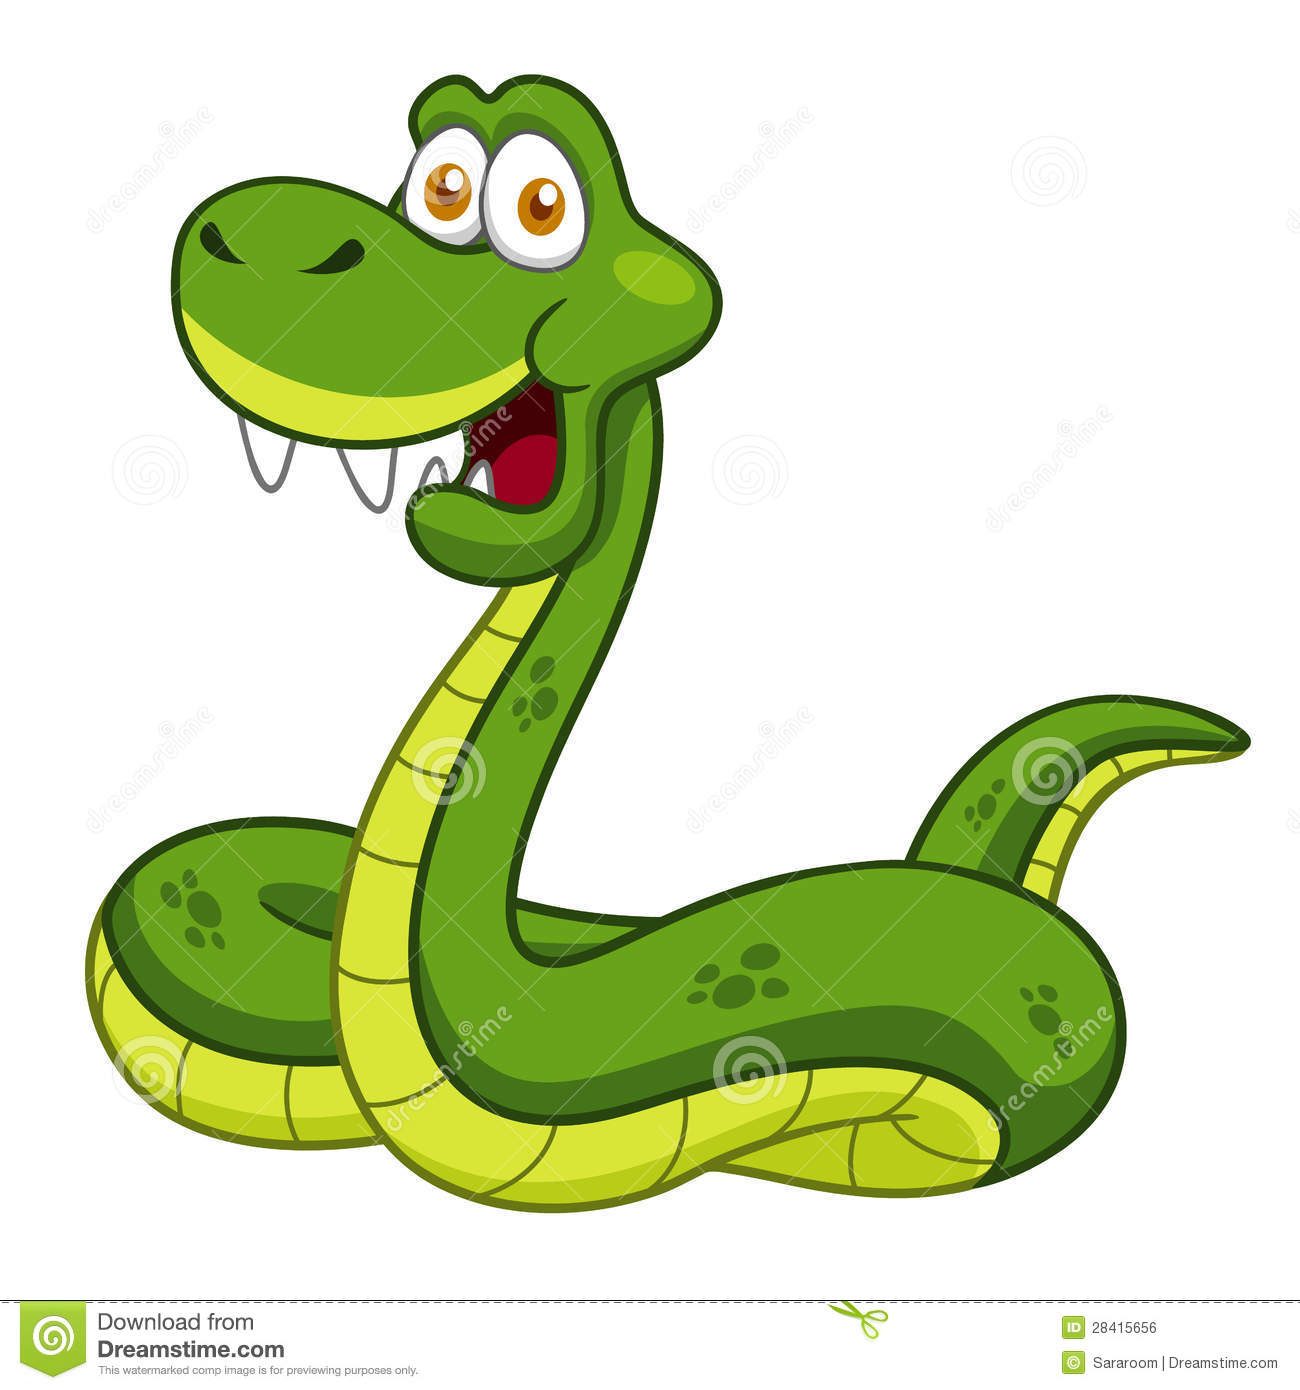 Royalty Free Stock Image Cartoon Snake Image28415656 on Green Spiral Symbol